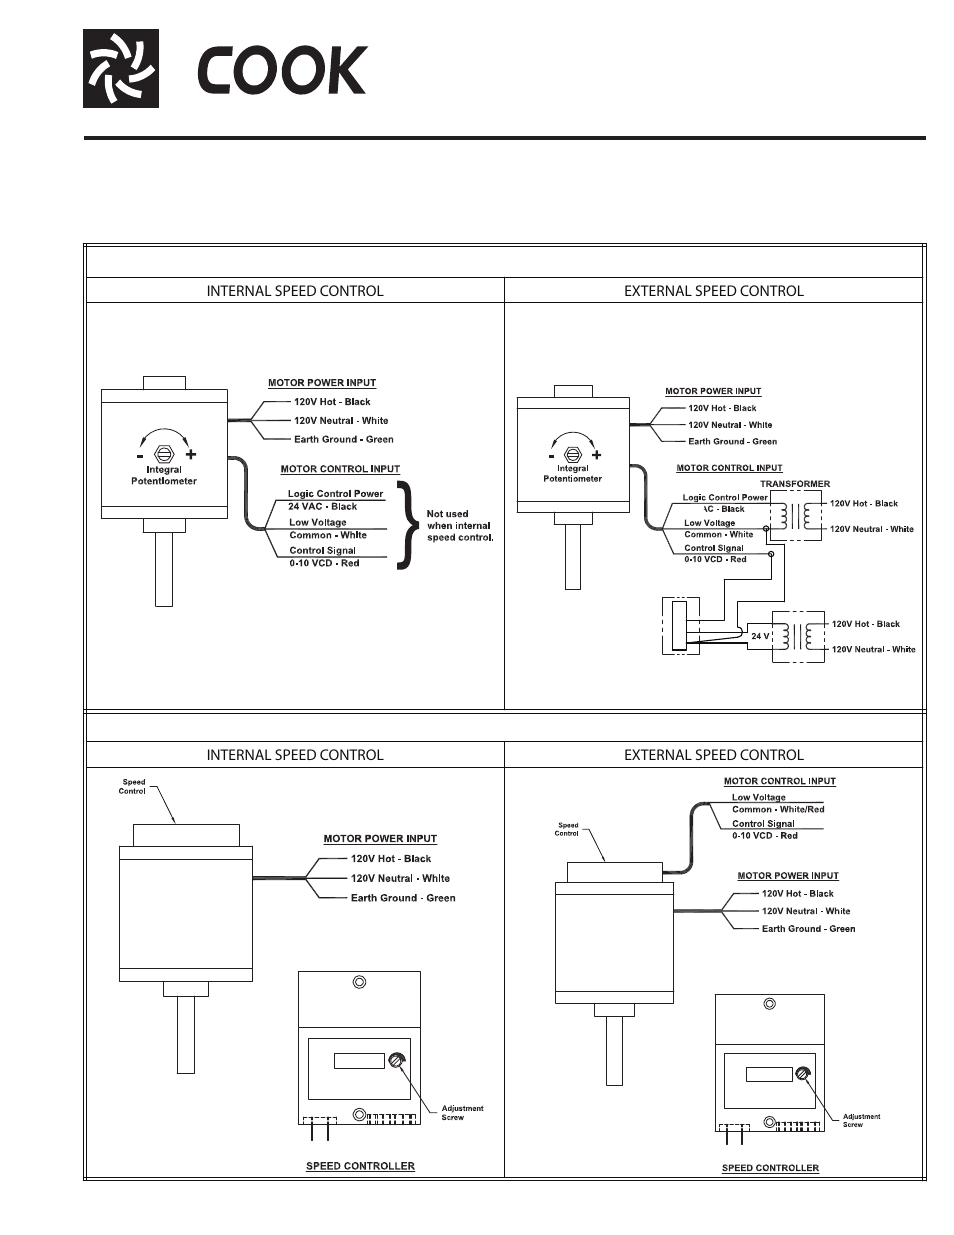 Cook Ec Motor Wiring User Manual